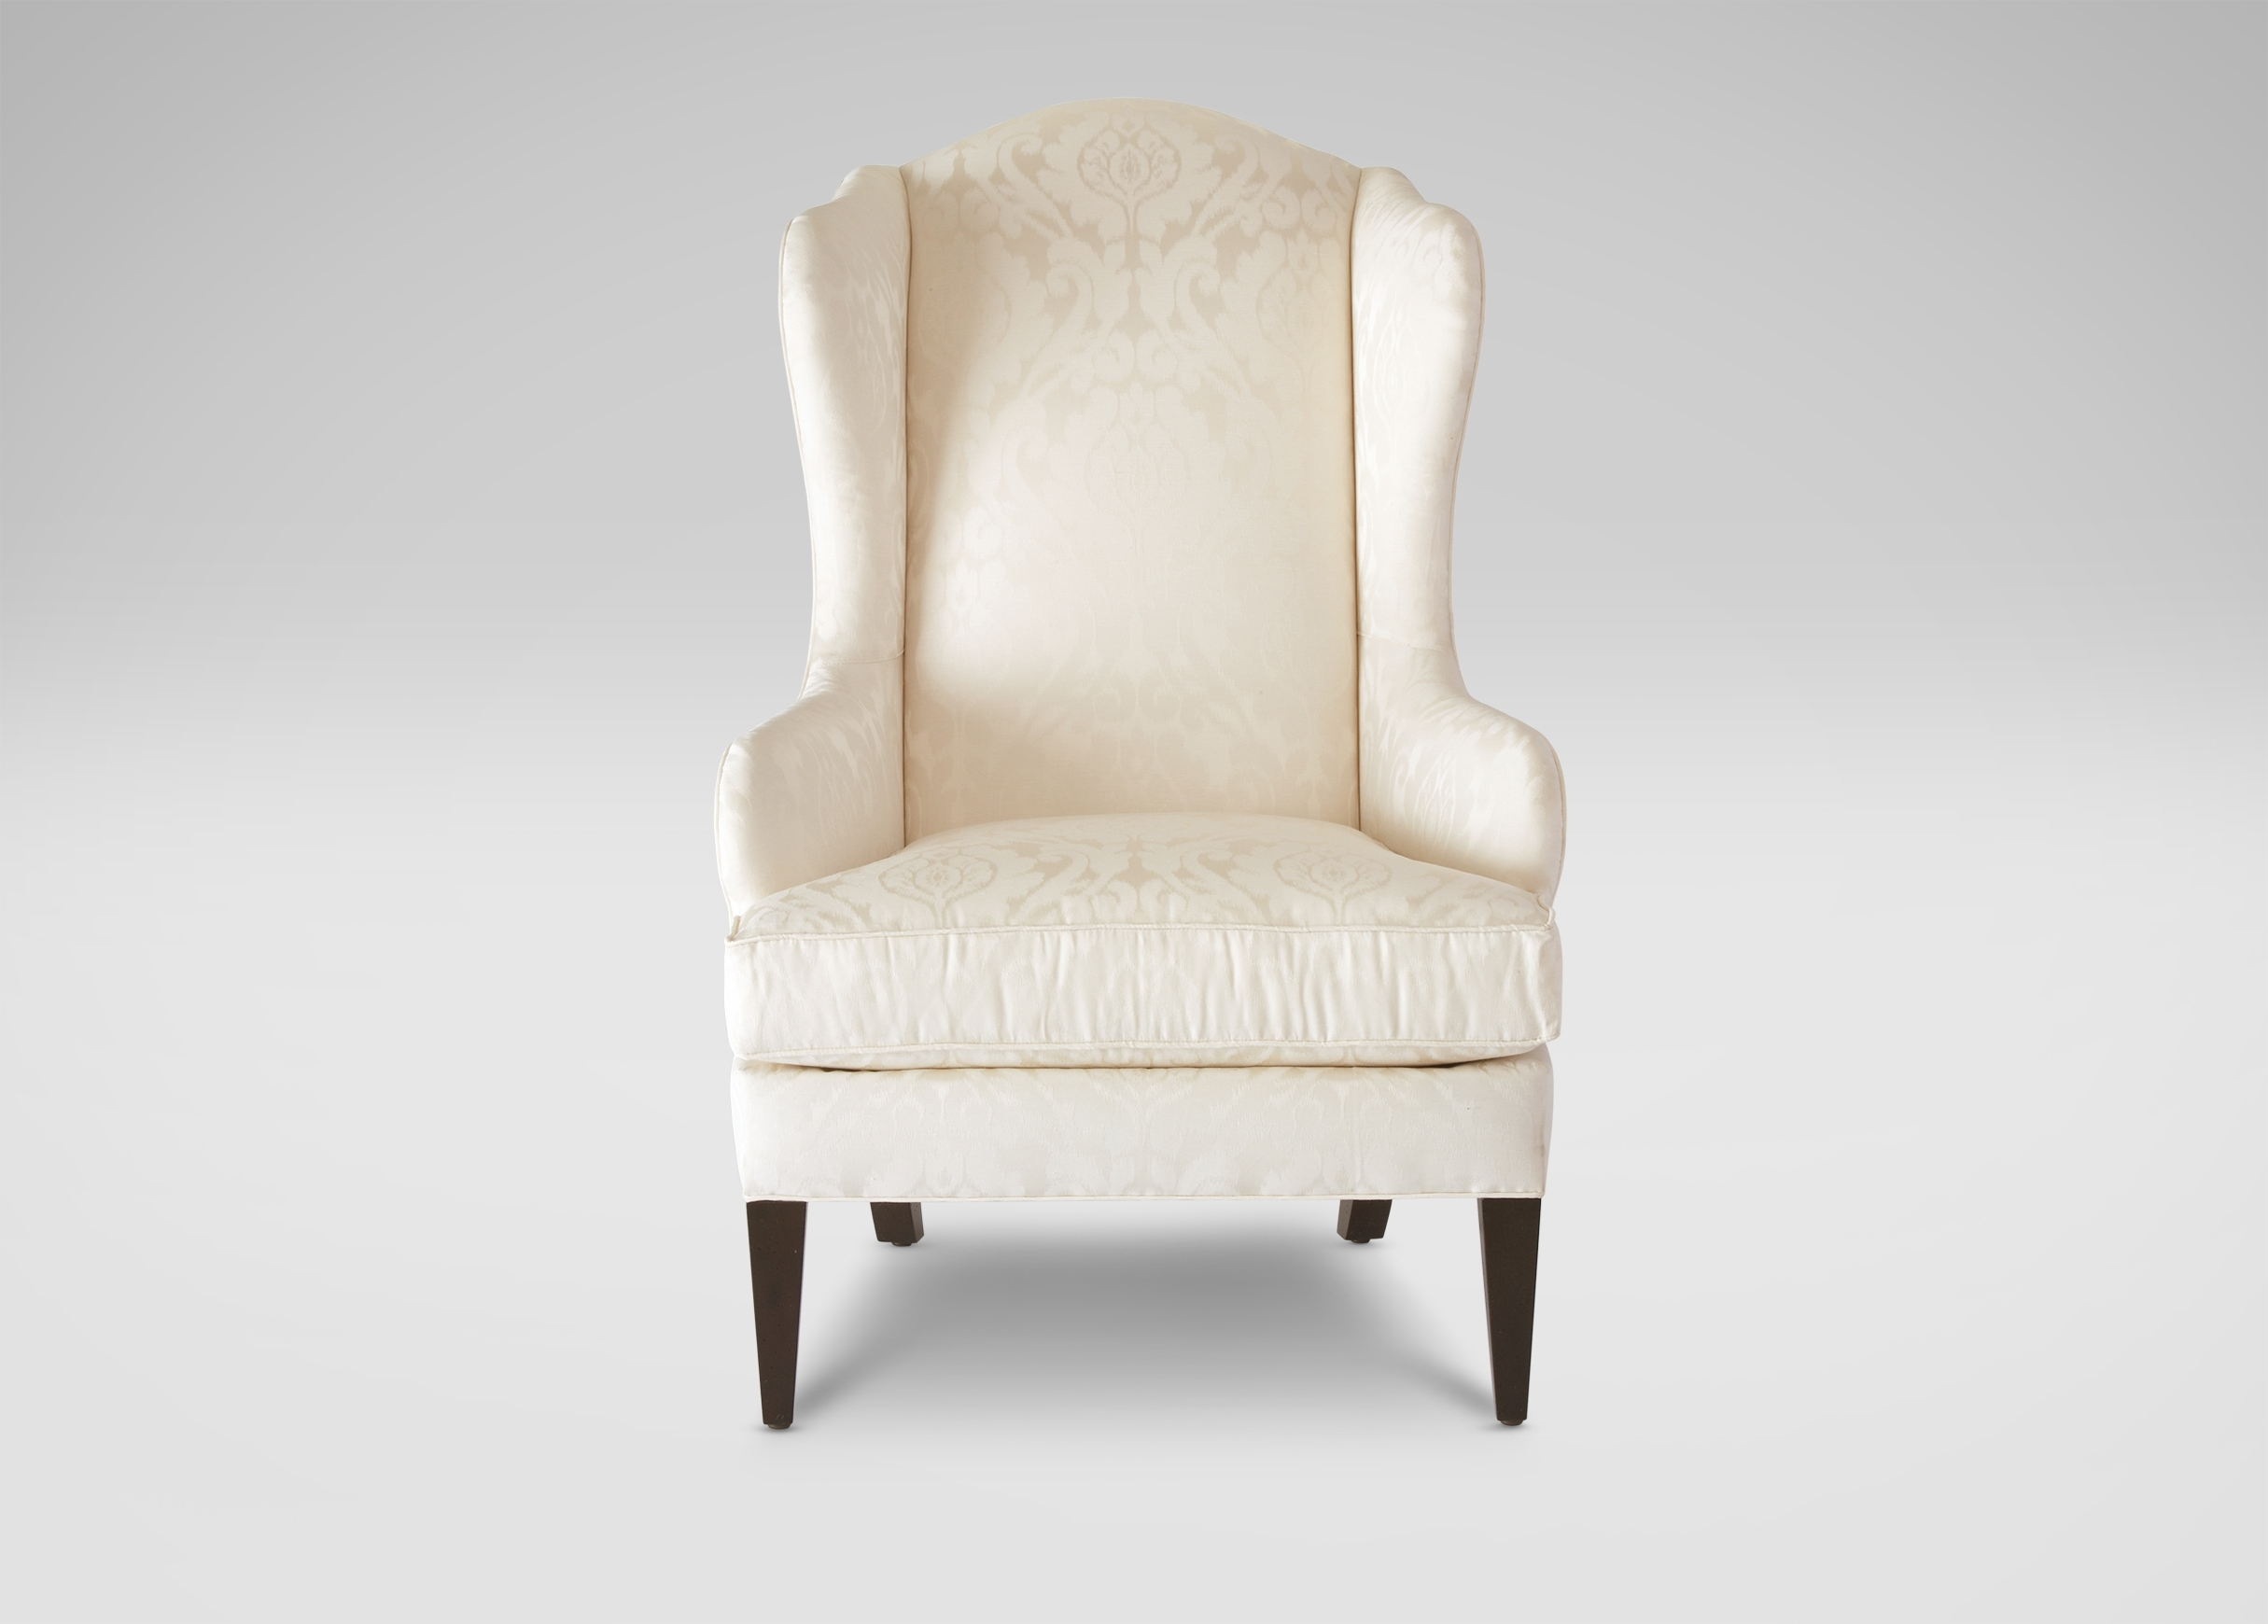 Chairs & Chaises Inside 2018 Ethan Allen Chaises (View 15 of 15)